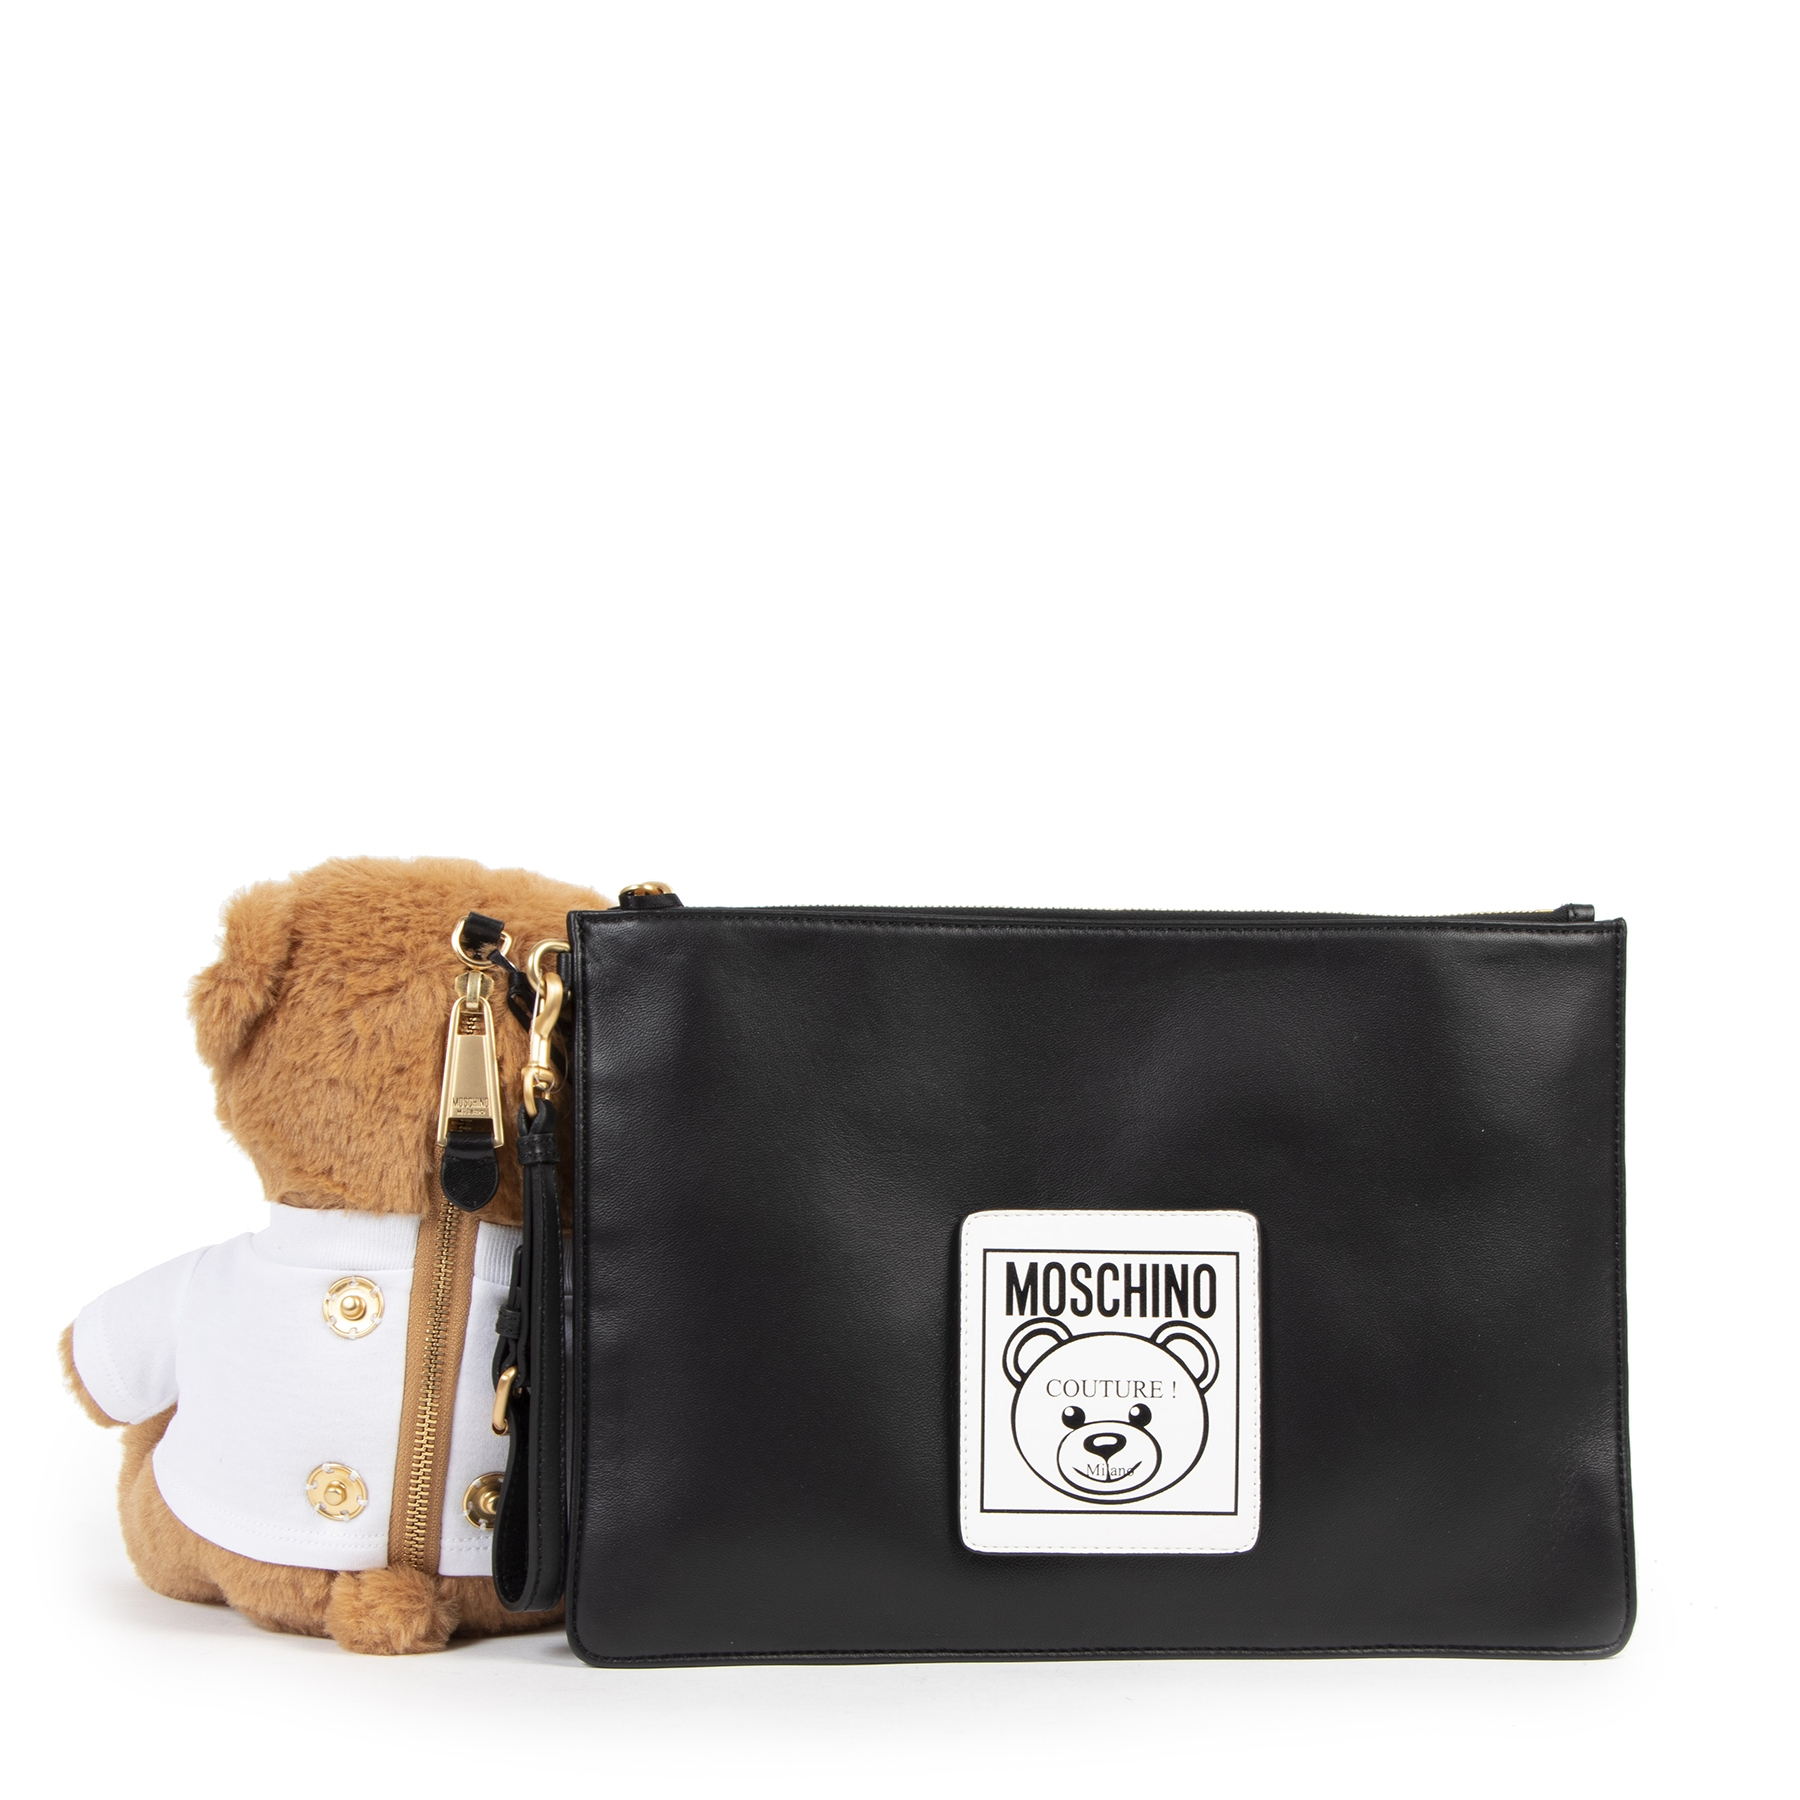 Authentic secondhand Moschino Black Leather Clutch with Teddy Bag designer bags luxury vintage webshop safe secure online shopping